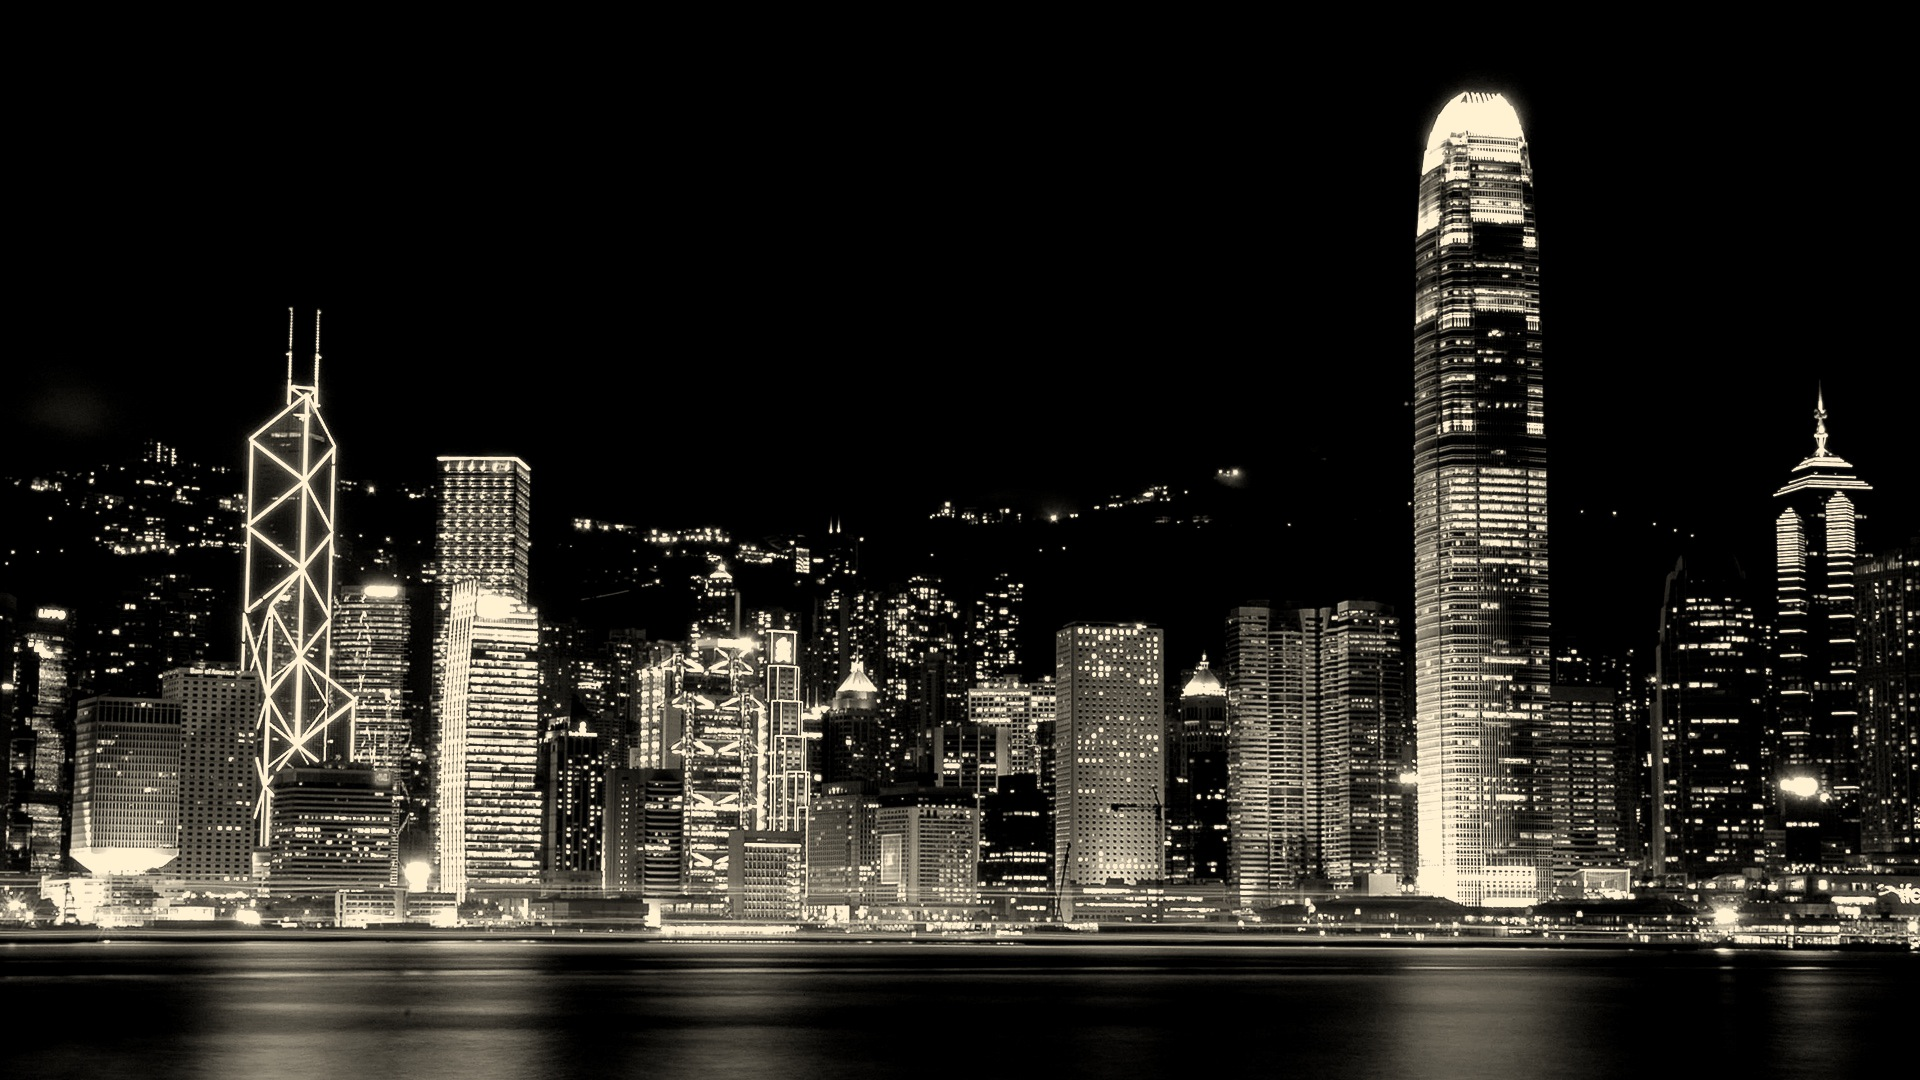 Most Inspiring Wallpaper City Background - city-background-18308-18772-hd-wallpapers  Collection_654662 .jpg